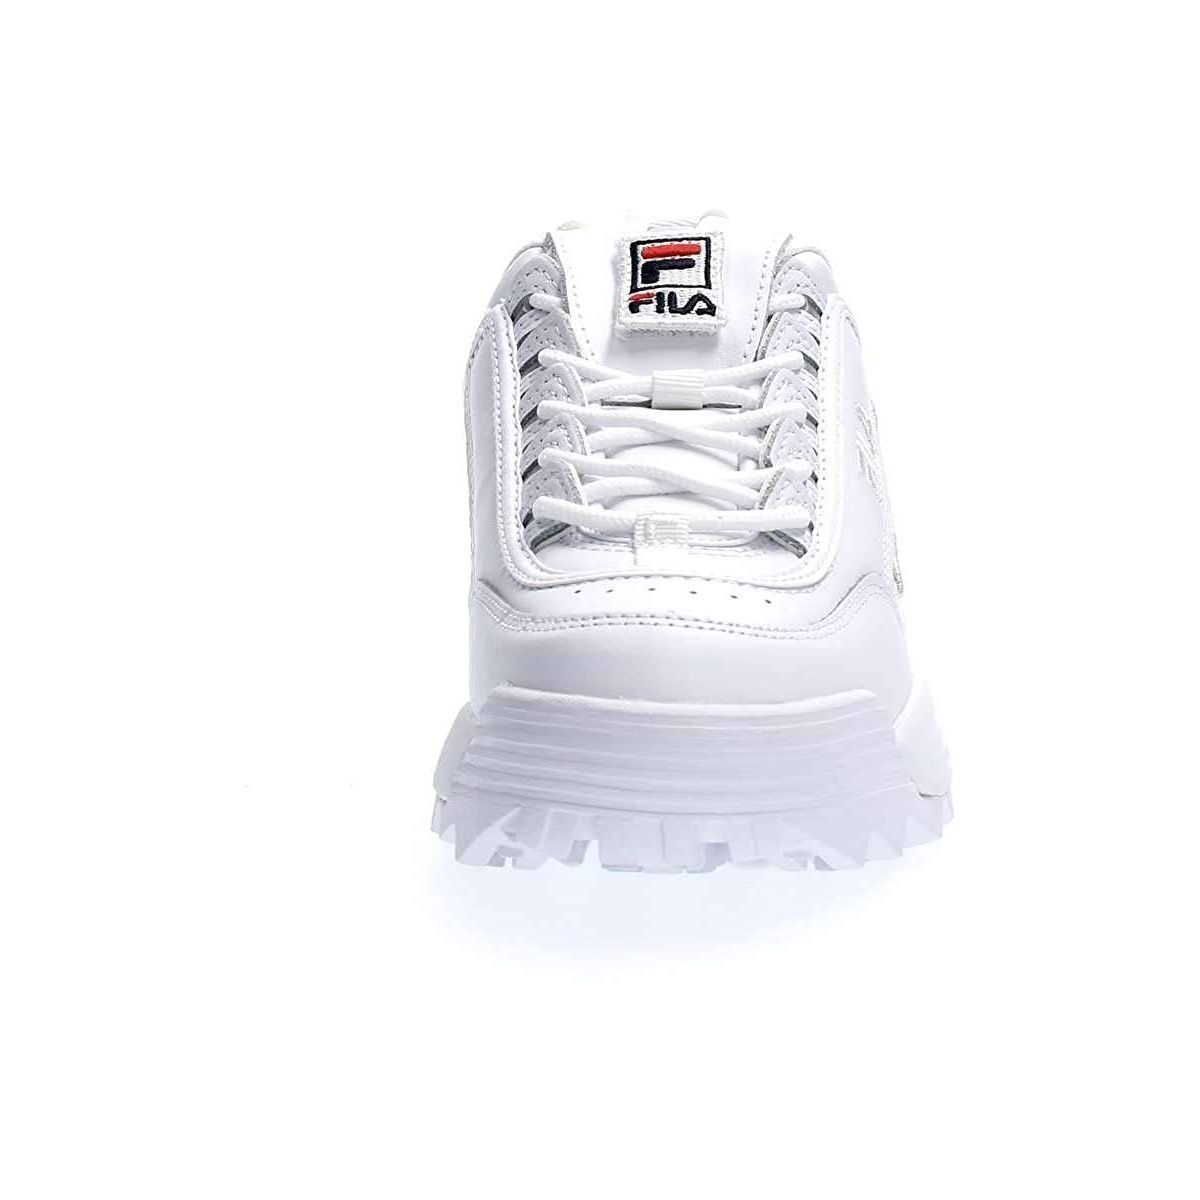 Fila femme disruptor 2 patches blanc1179601_3